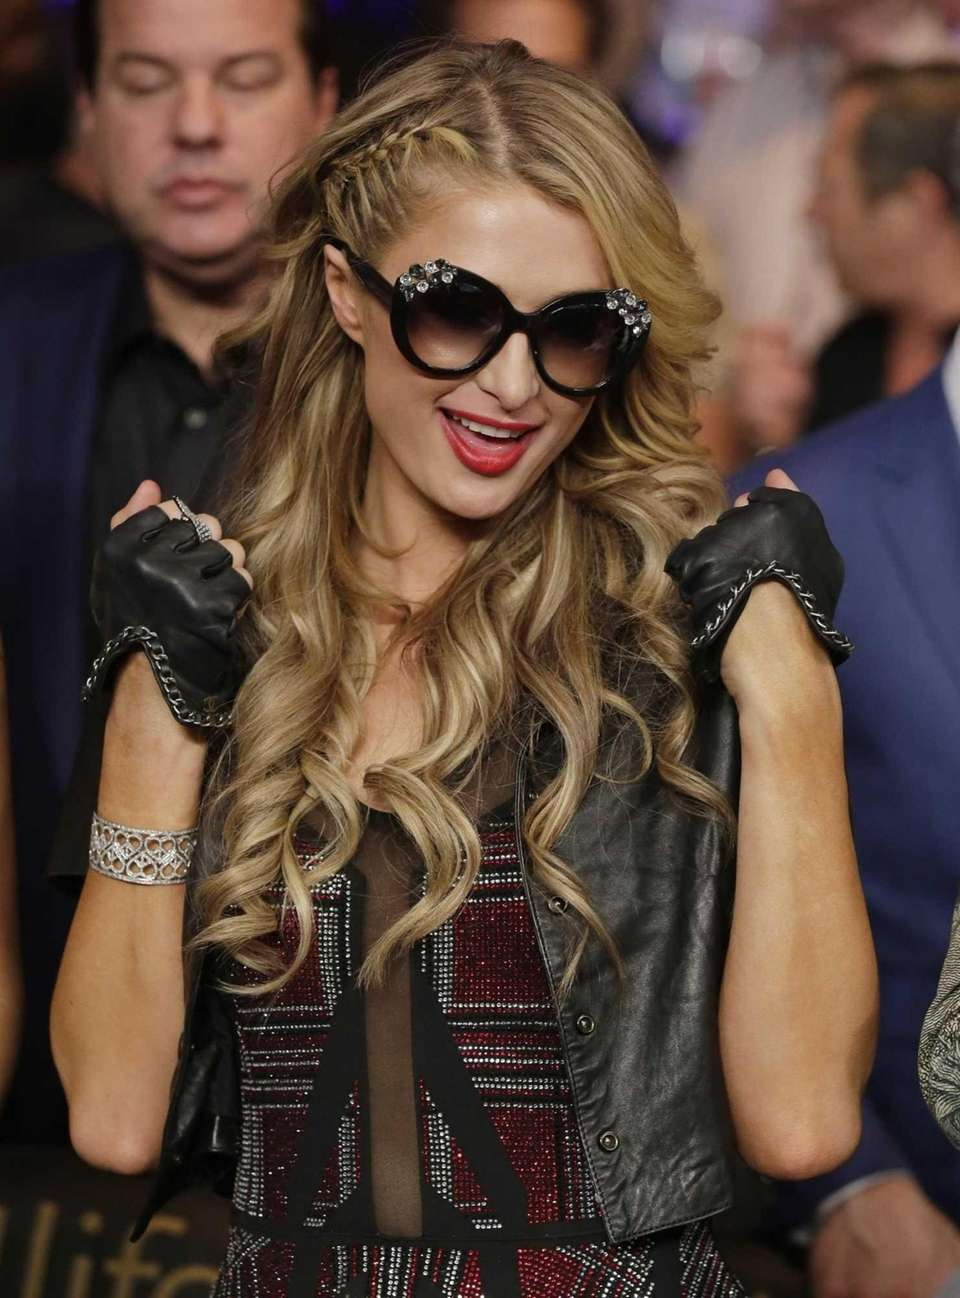 Paris Hilton enters the arena before the start